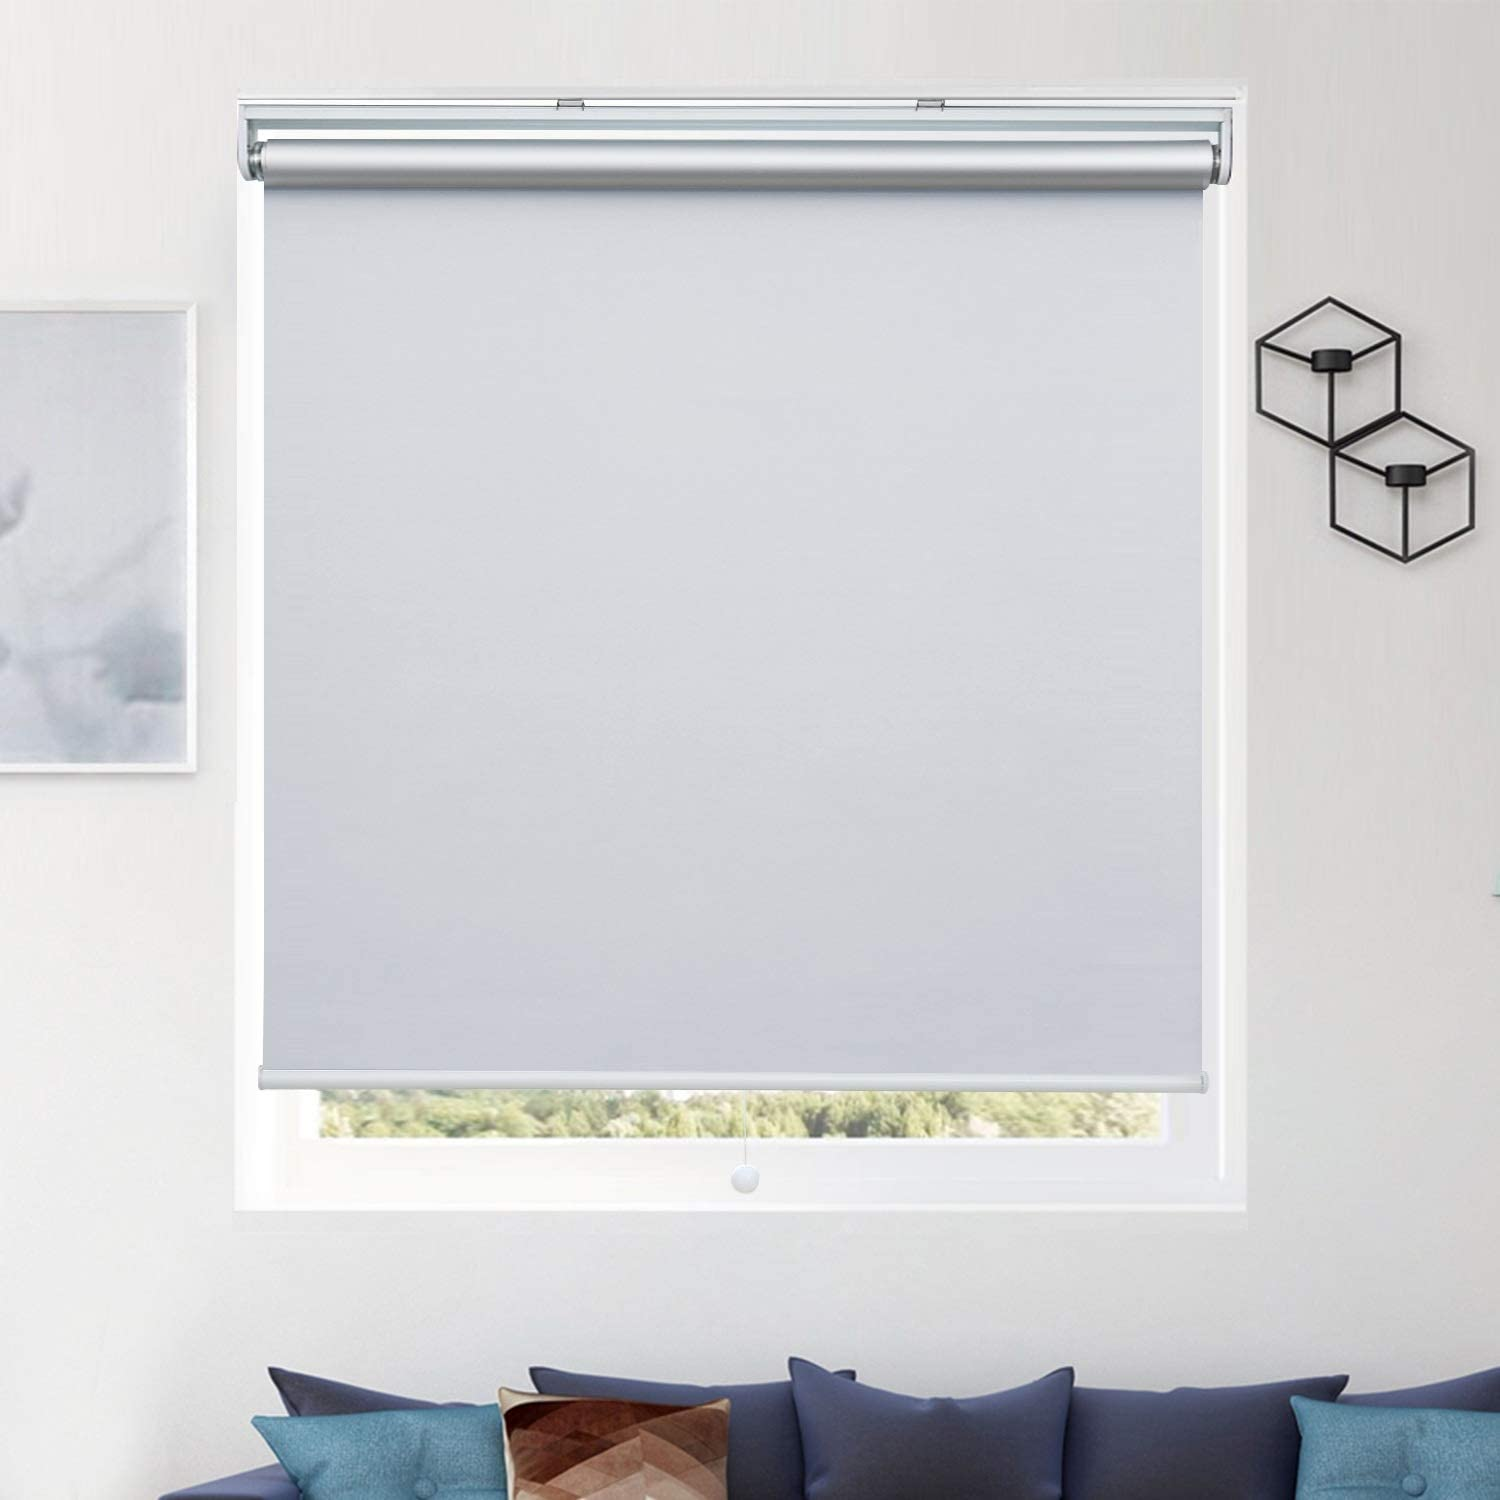 """Donutse 100% Blackout Fabric Shades Cordless Roller Shades for Windows, Window Blinds and Shades for Home and Office, Thermal Insulated, UV Protection, White, 35"""" W x 72"""" H"""